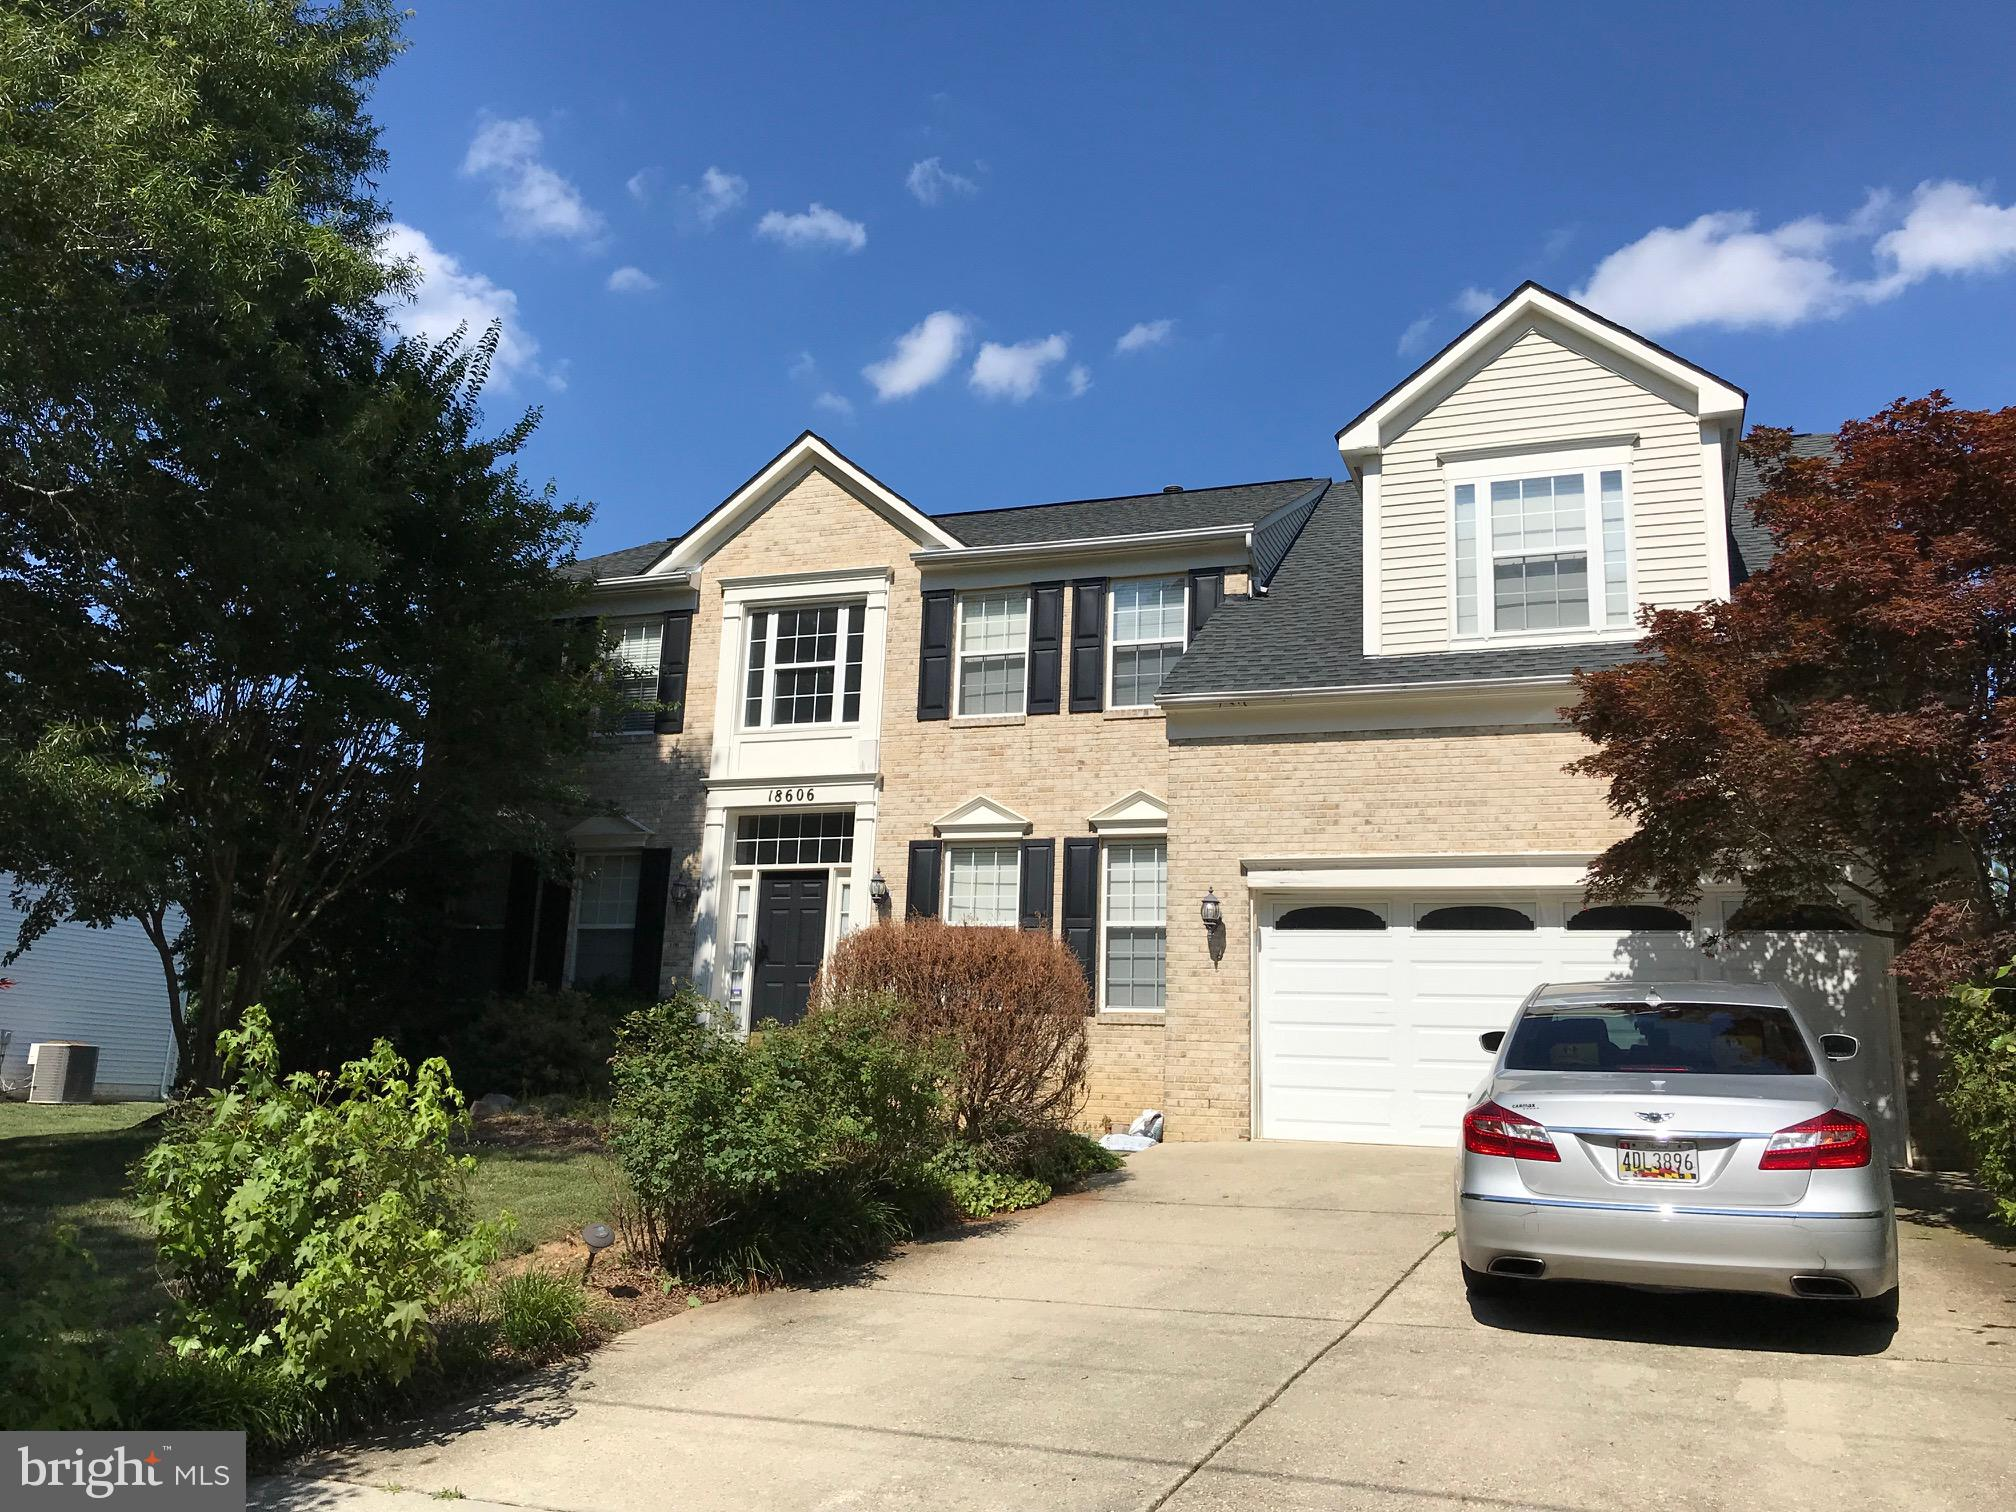 18606 INDEPENDENCE ROAD, ACCOKEEK, MD 20607